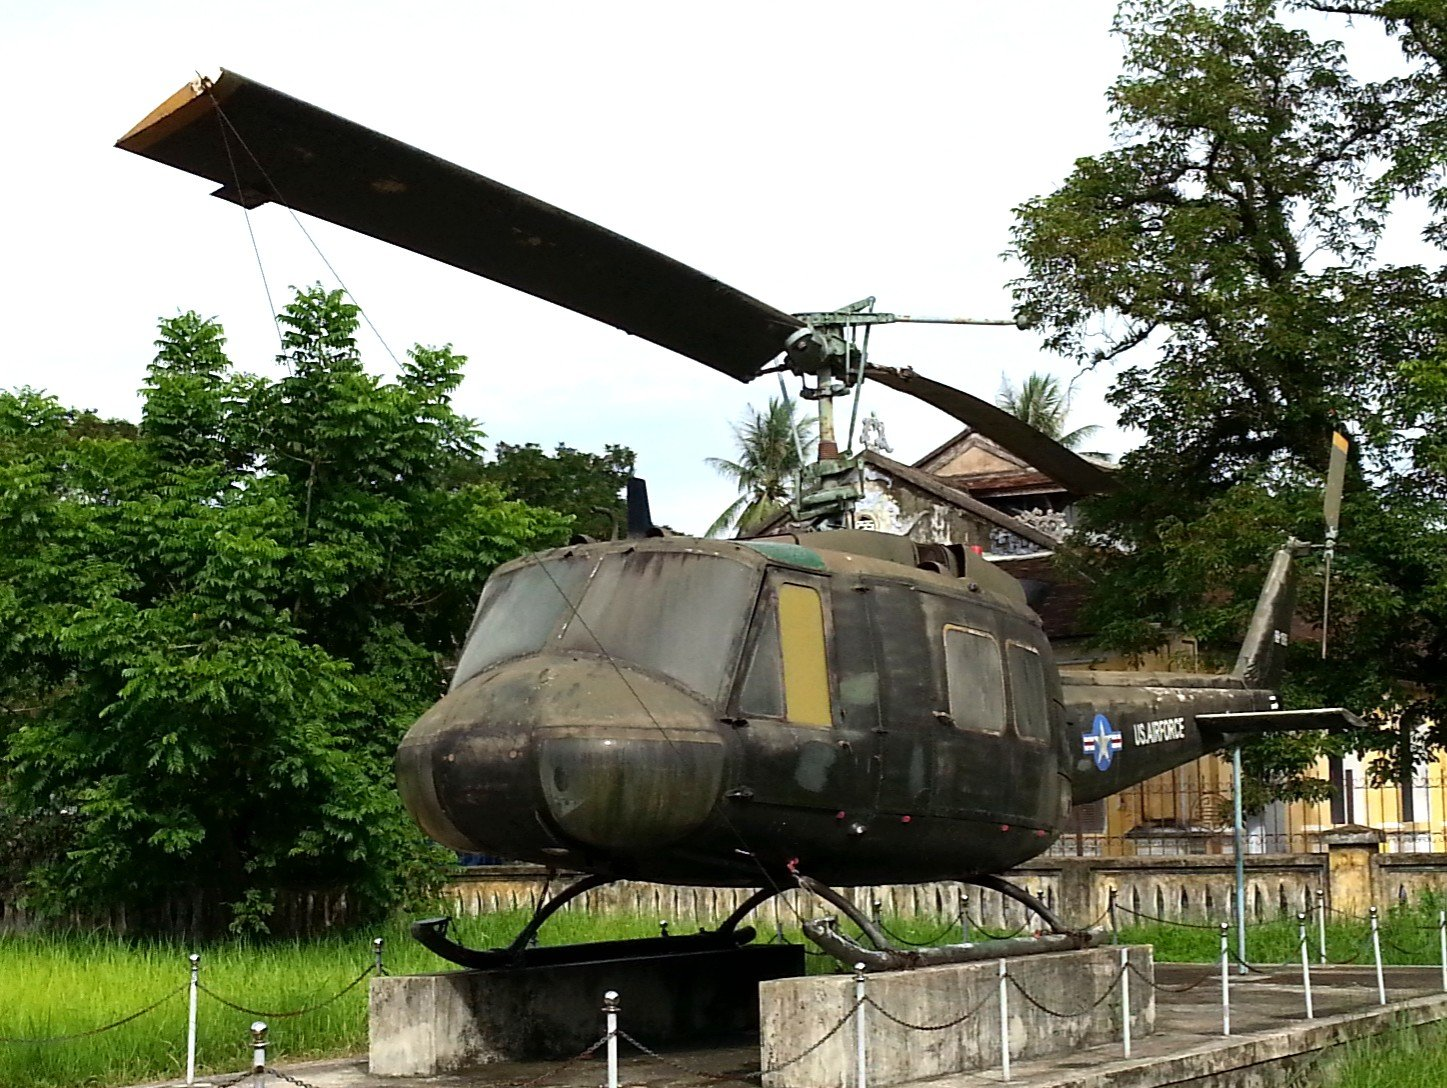 American Bell UH-1 Iroquois helicopter also known as a Huey